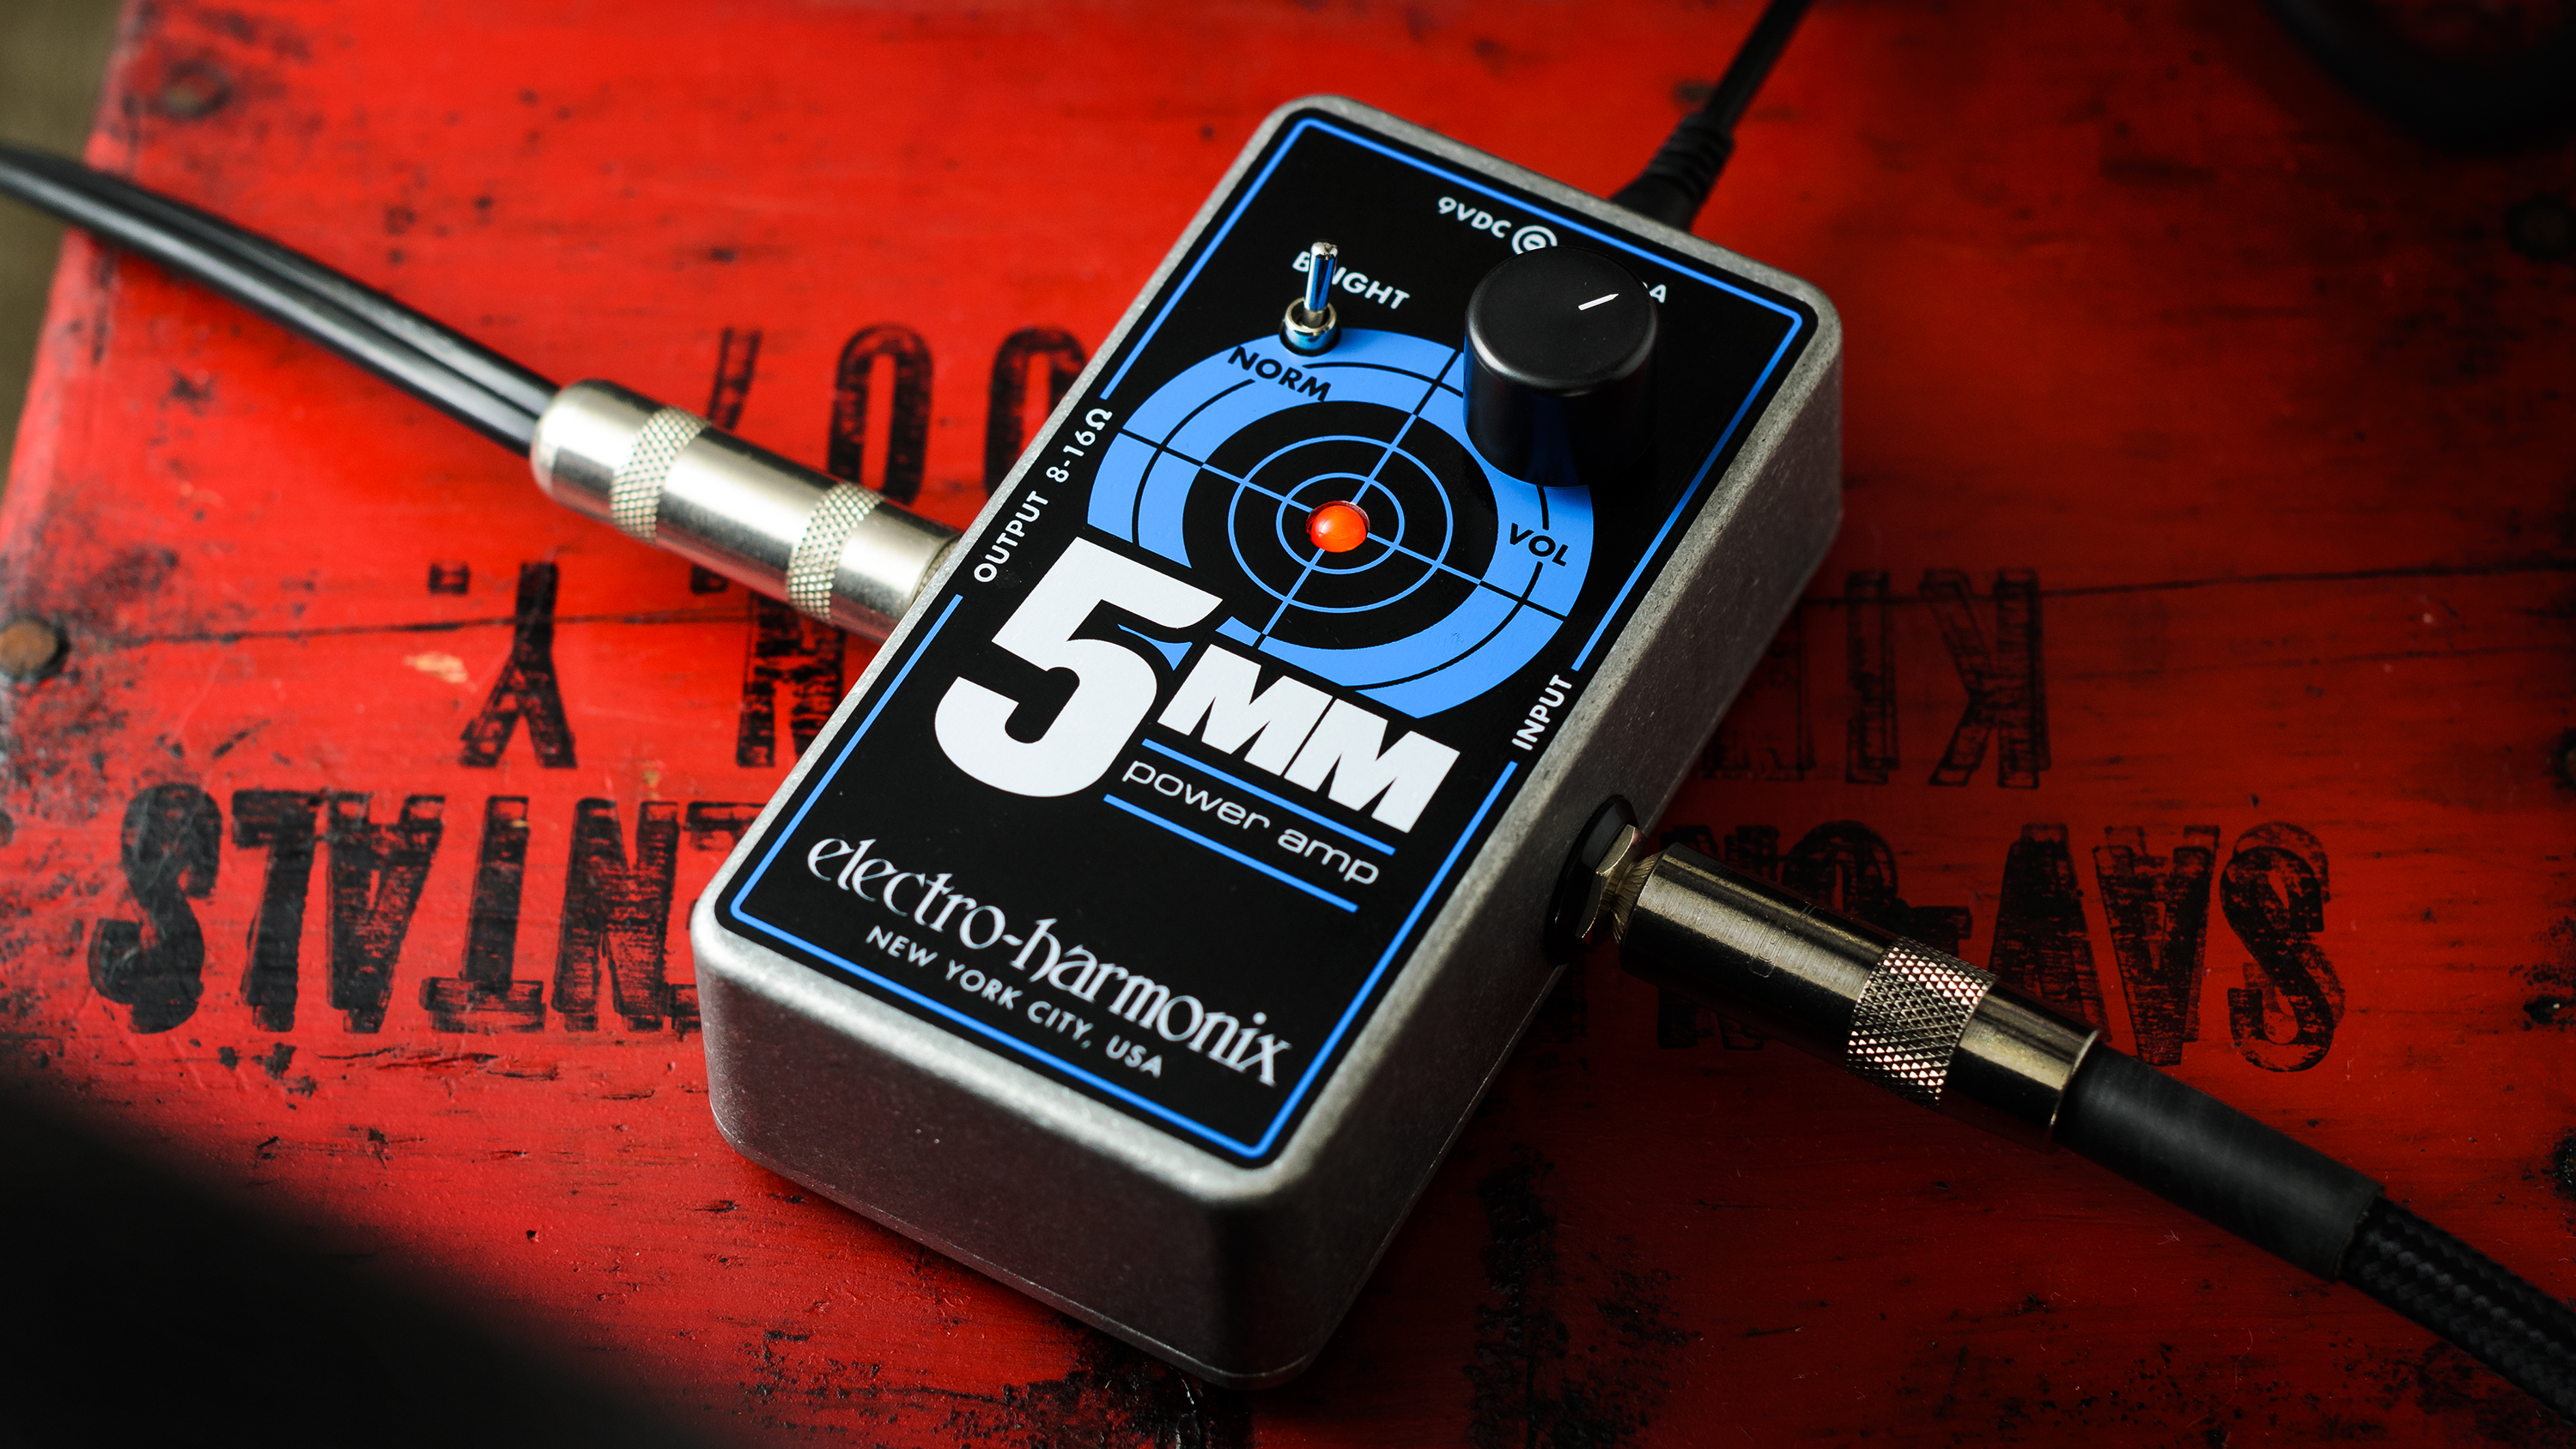 Go from sparkly cleans to raw bluesy grit with Electro-Harmonix's new 5MM Guitar Power Amplifier